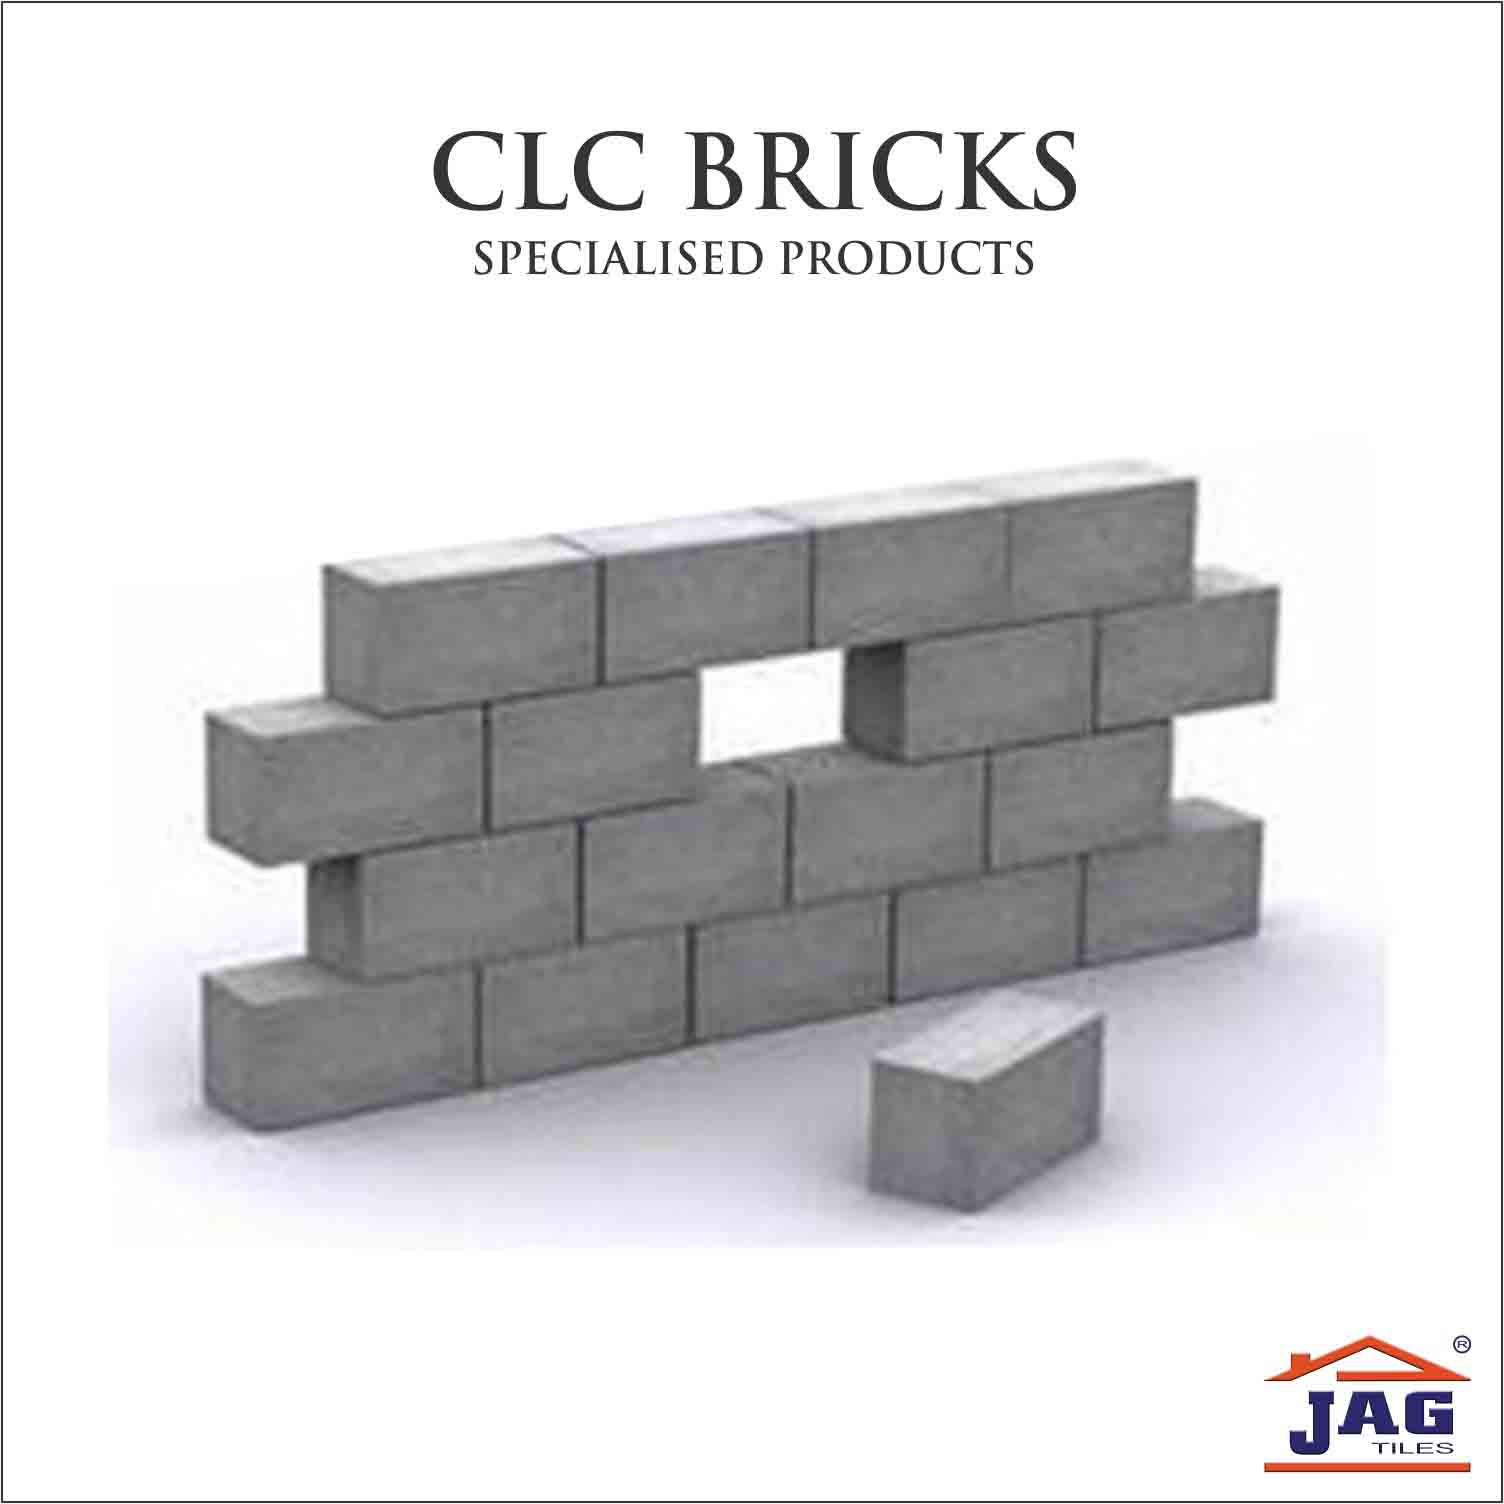 clc bricks project analysis The project report titled 'cellular lightweight concrete bricks (clc bricks)' includes present market position and expected future demand, market size, statistics, trends, swot analysis and forecasts.